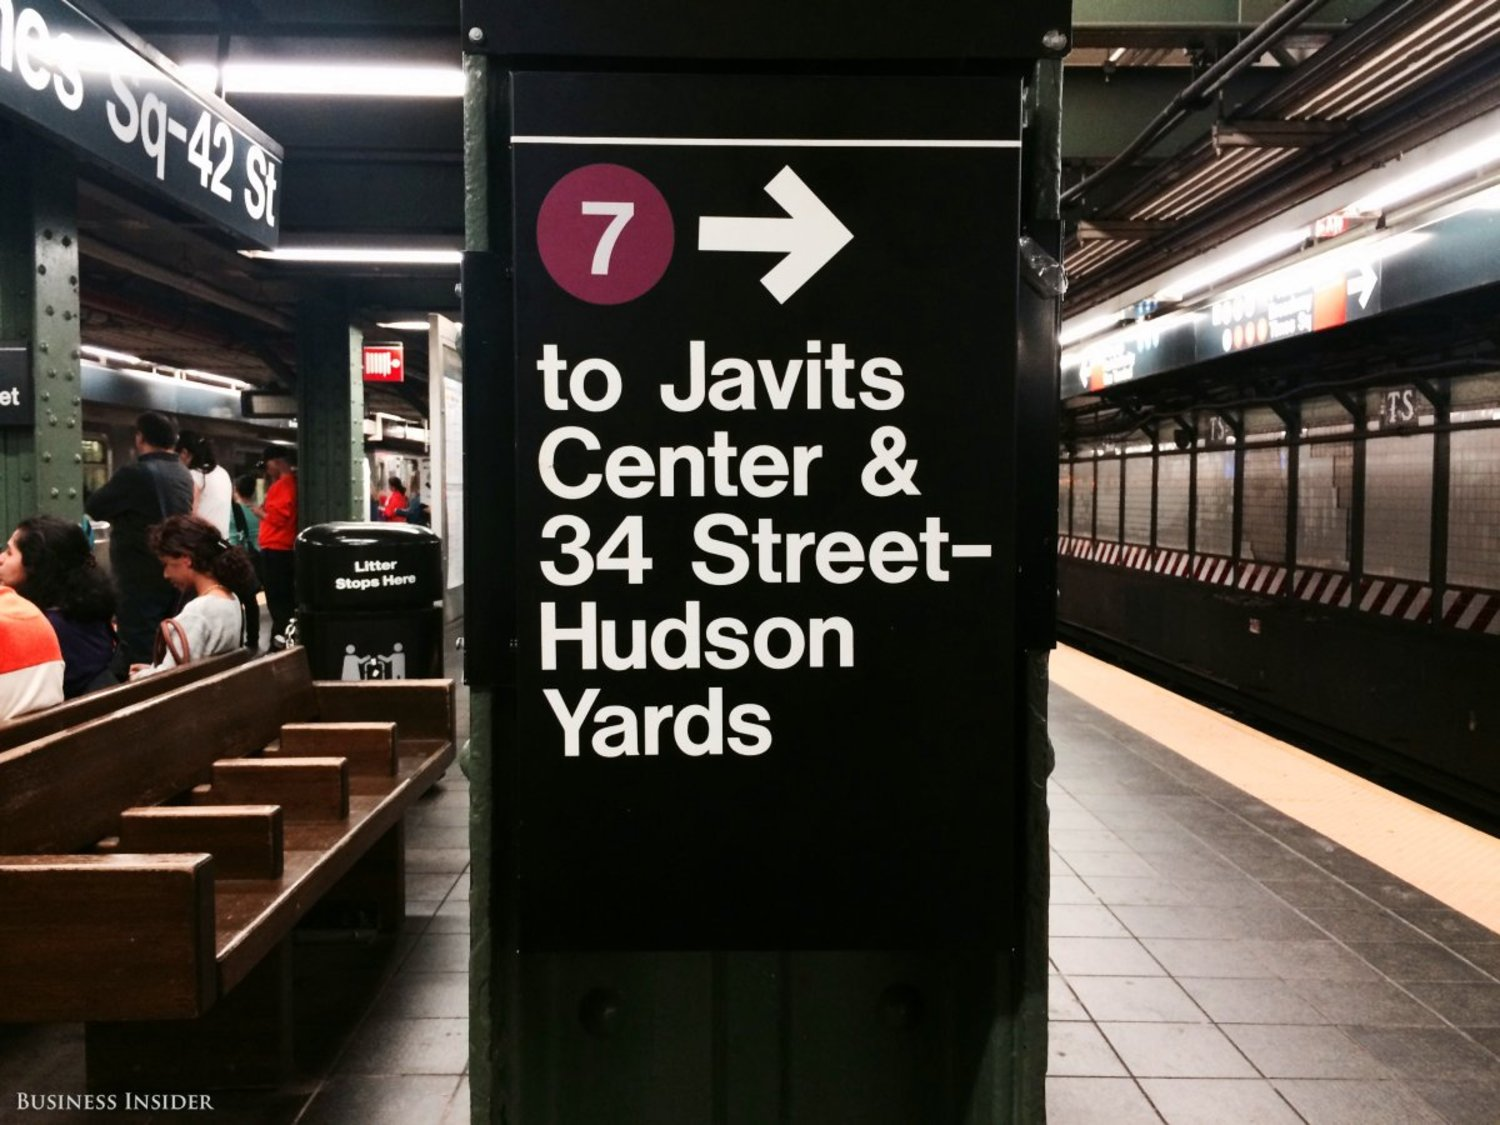 I hopped on the train at Times Square — 42nd Street. After navigating the labyrinth of platforms in the enormous Times Square station, I finally found the 7.